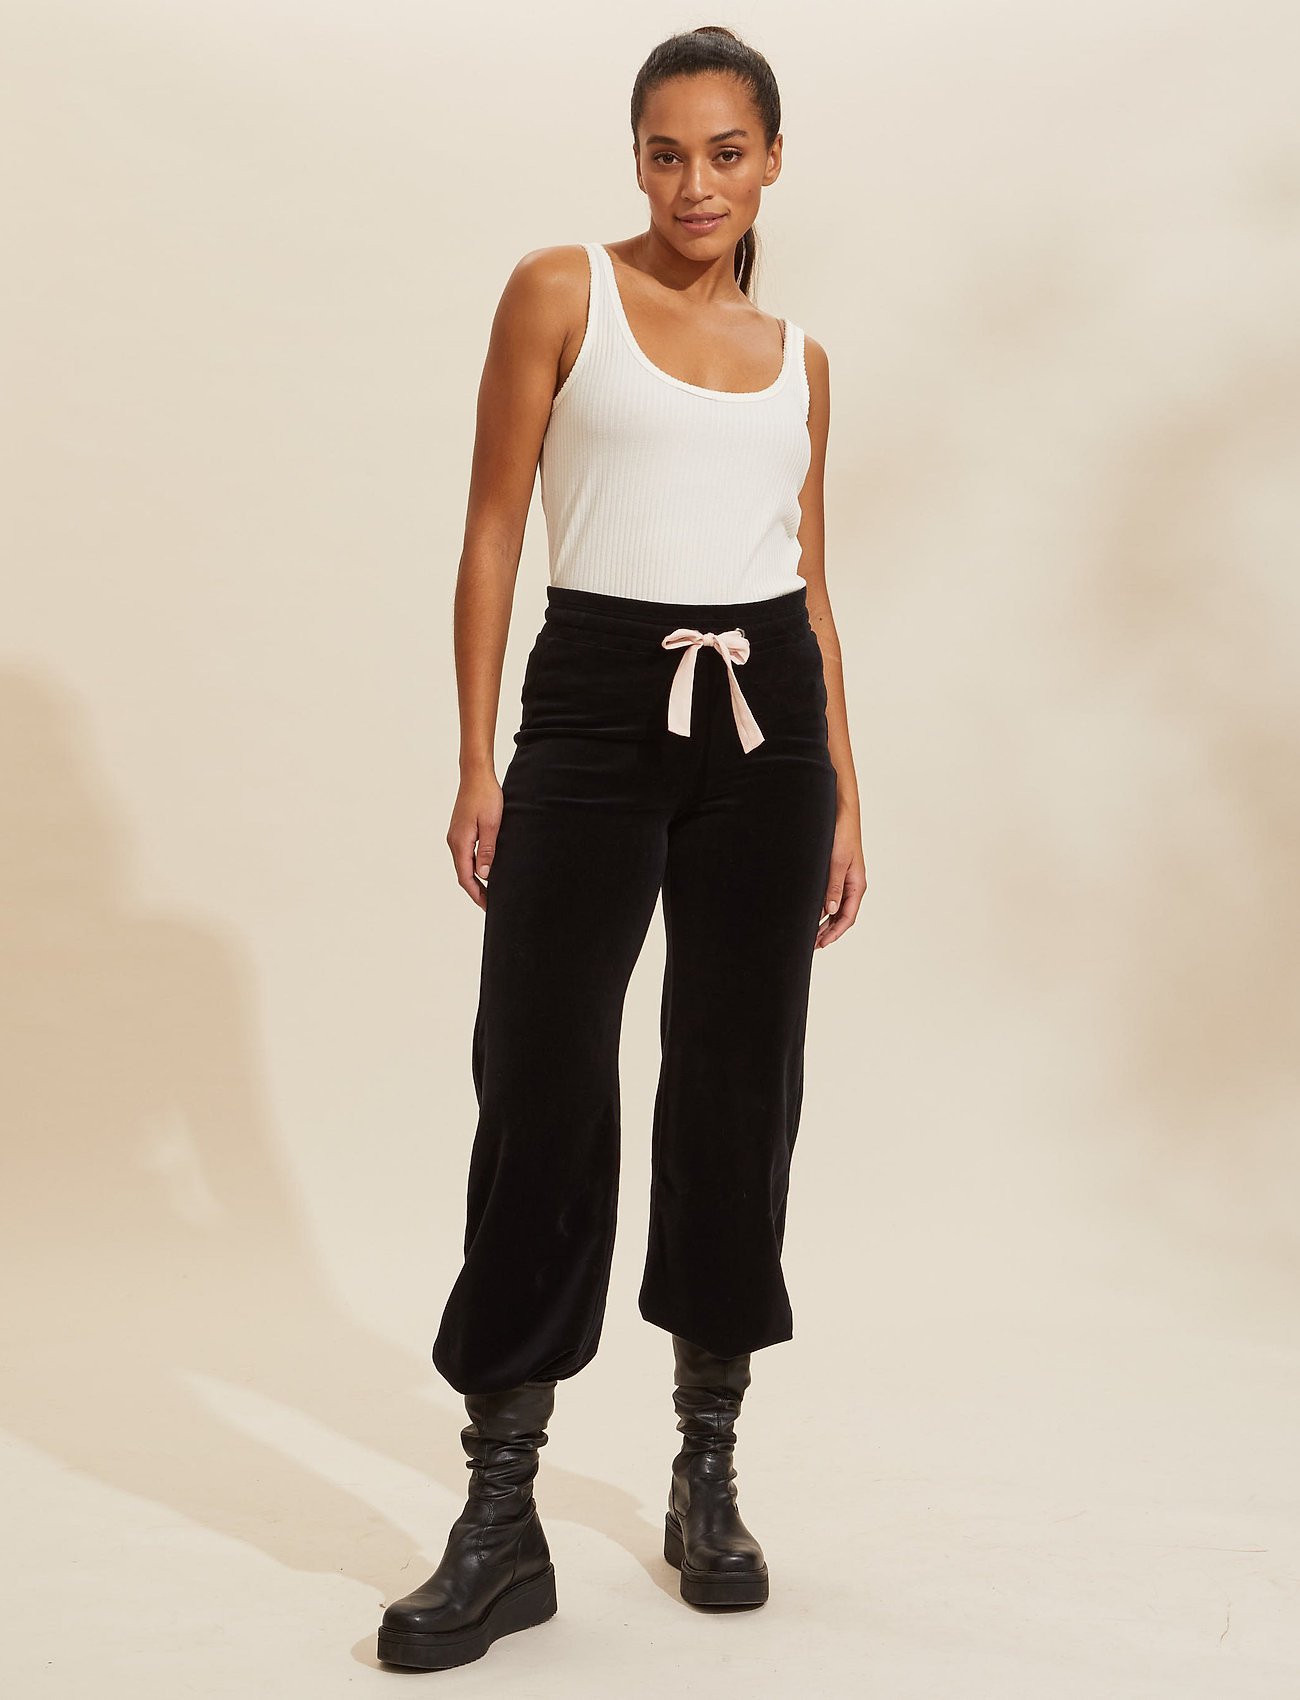 ODD MOLLY - Marion Pants - sweatpants - almost black - 0